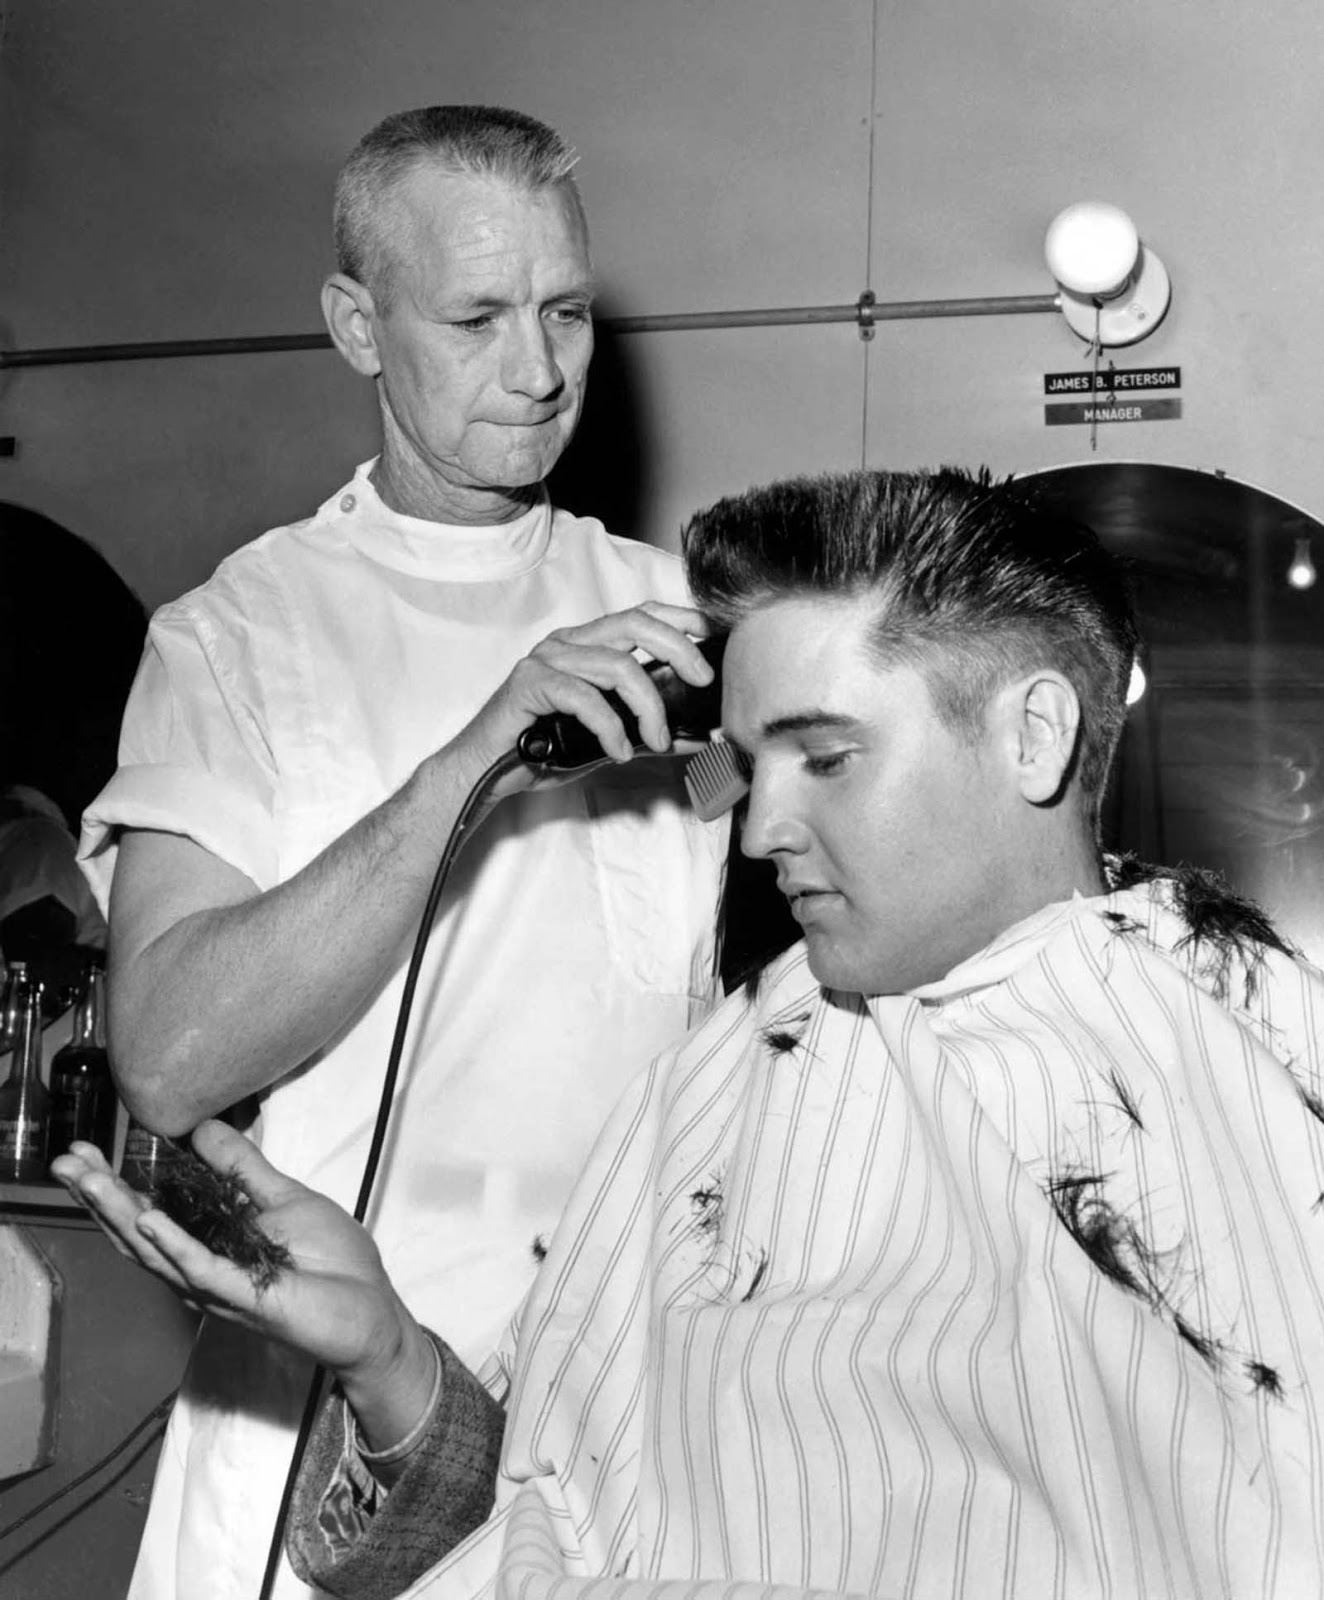 Elvis Presley receives a crew cut on his first full day as a member of the U. S. Army.